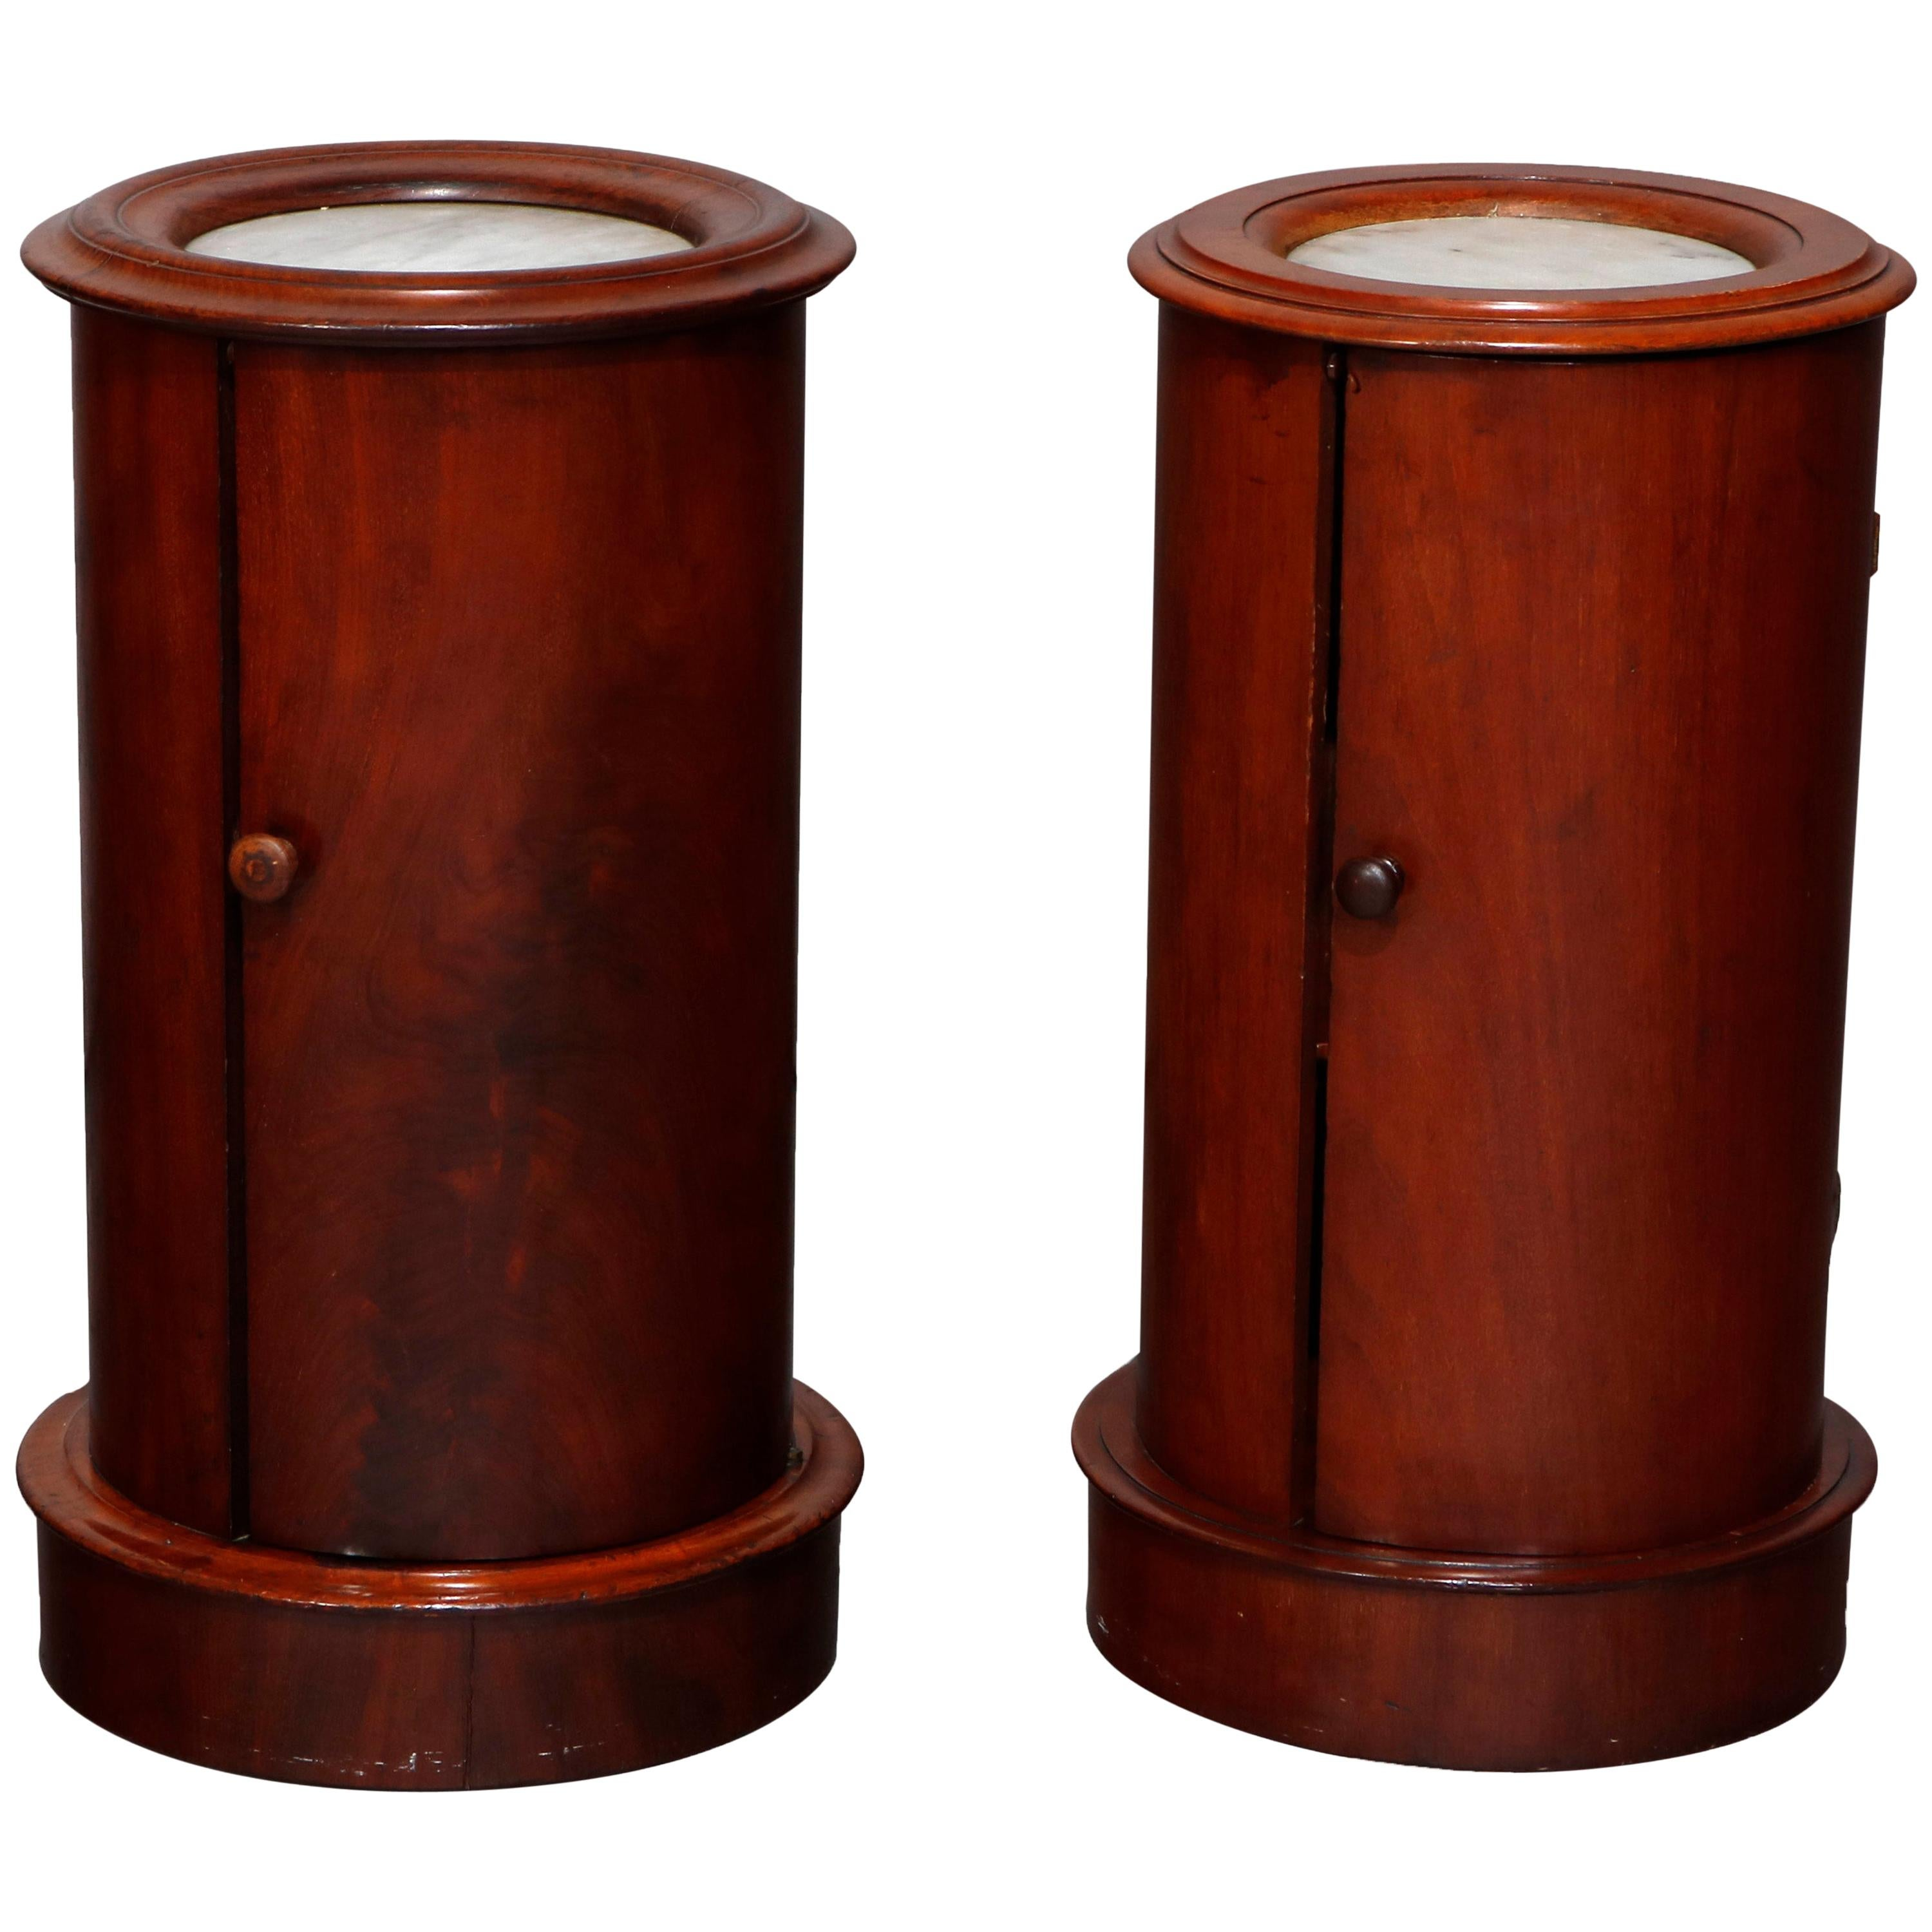 Antique French Classical Mahogany and Marble Cellarettes, circa 1830